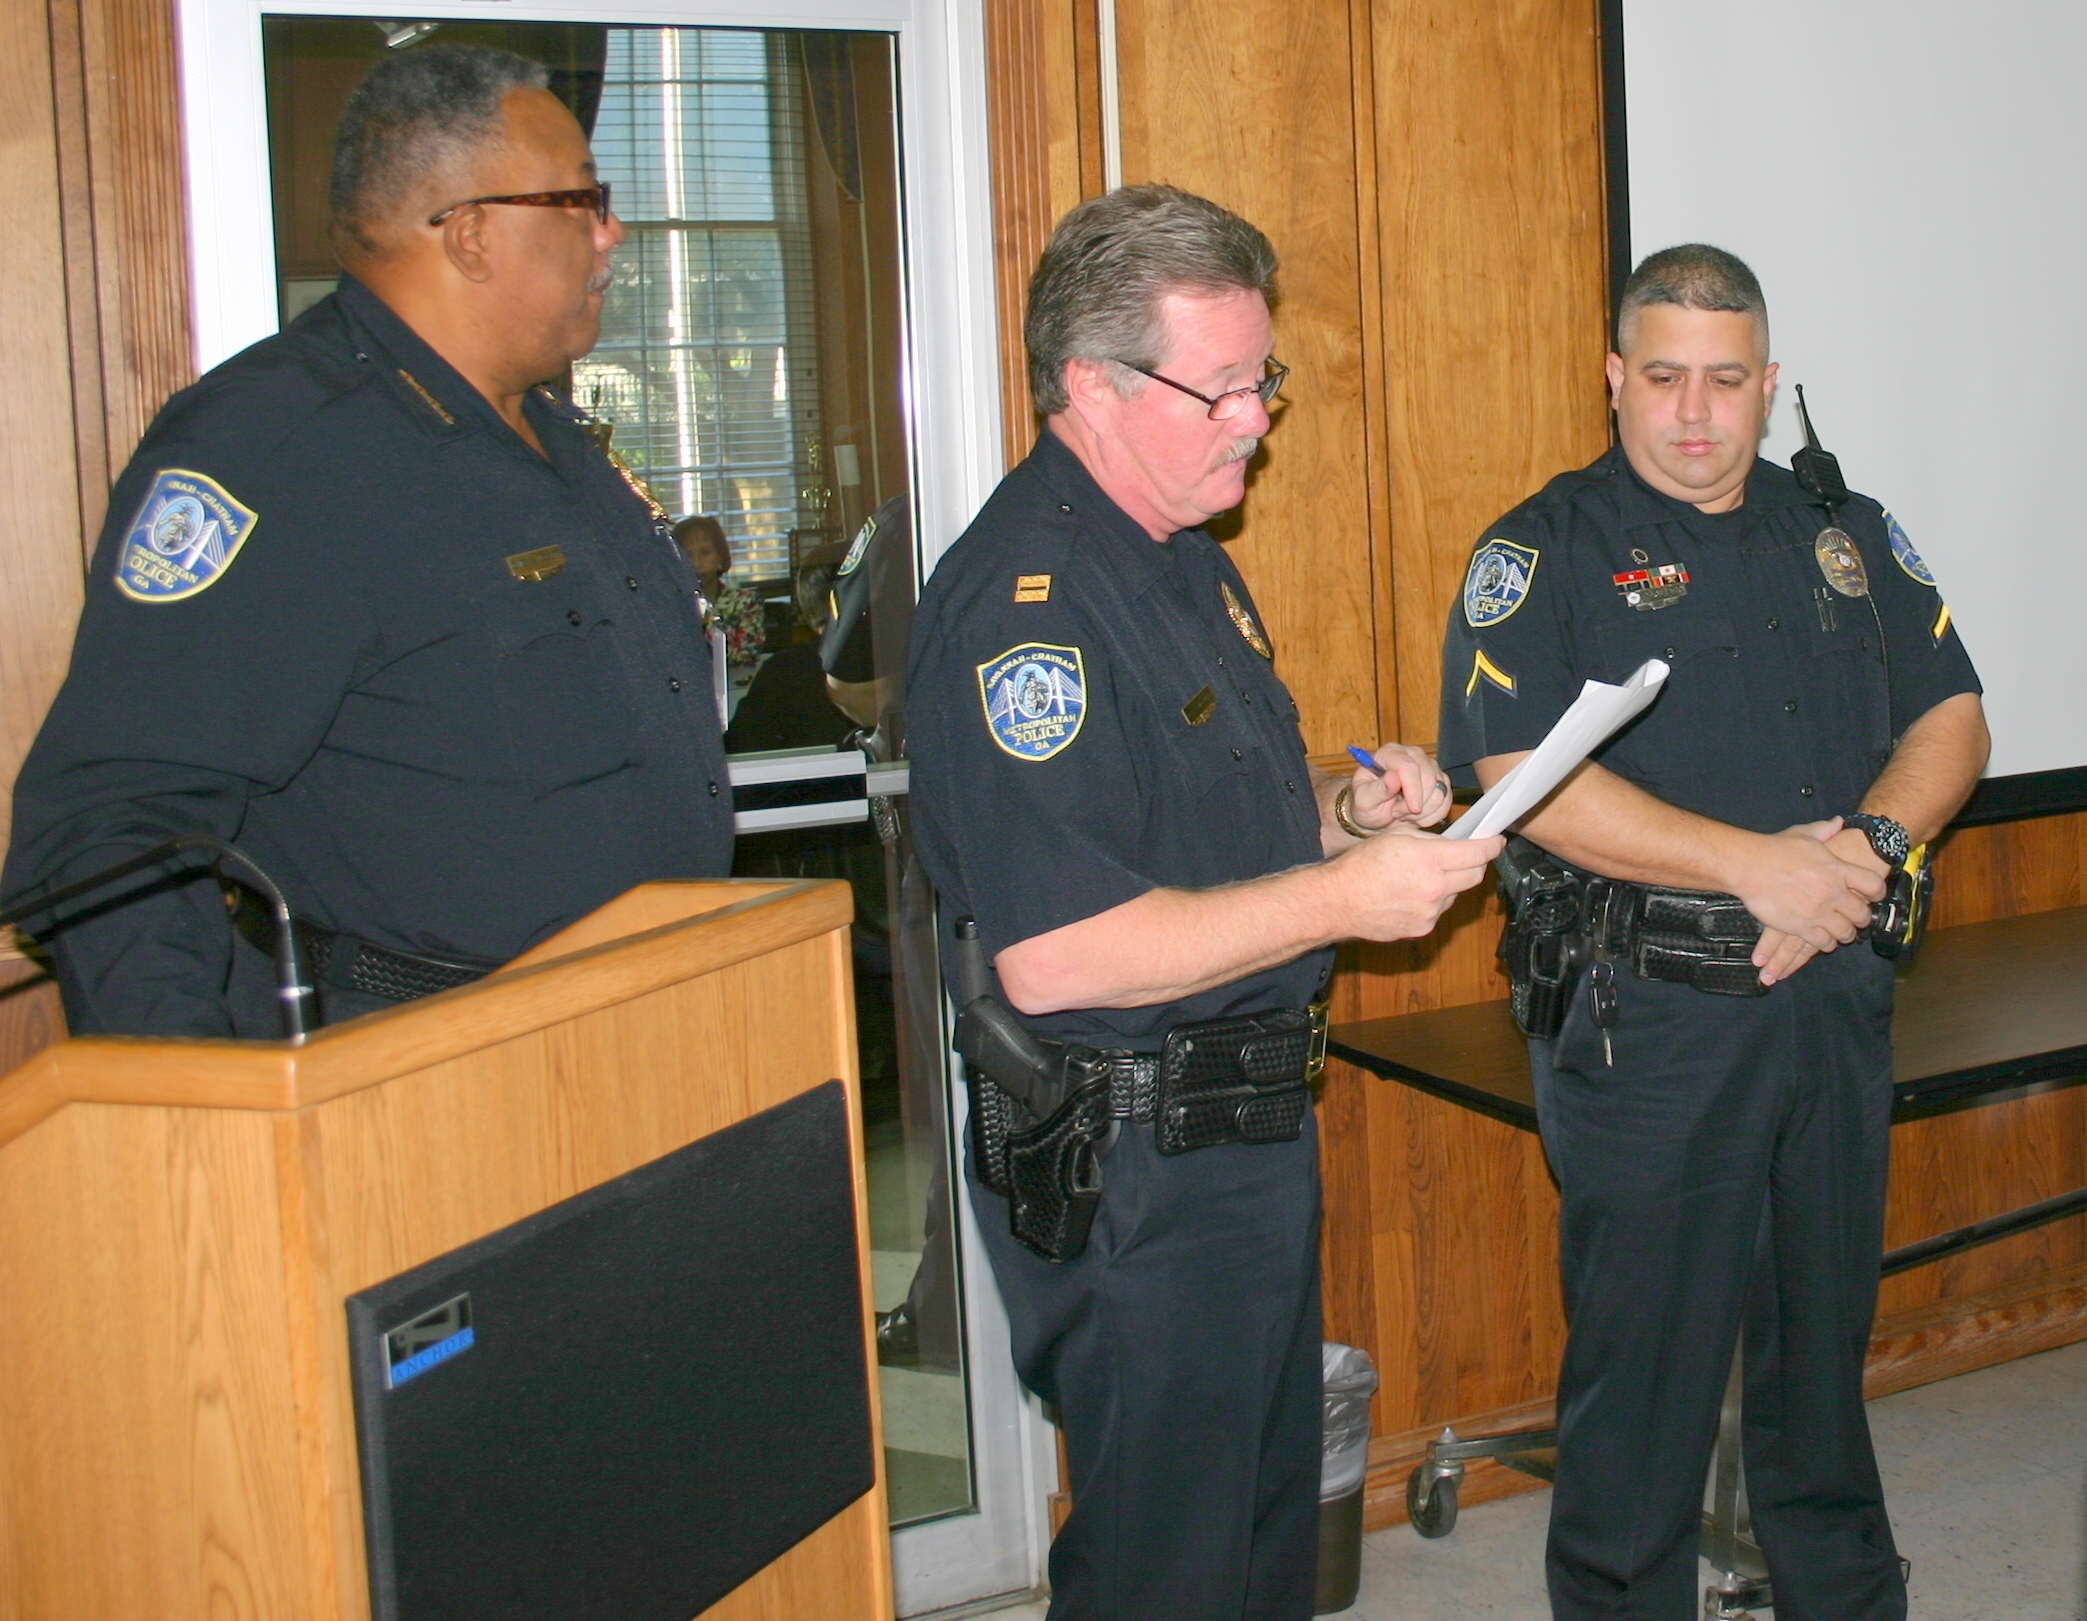 Photo 2 caption: Chief Willie Lovett, Capt. Philip Reilley present T-shirt to Officer Jason Pagliaro